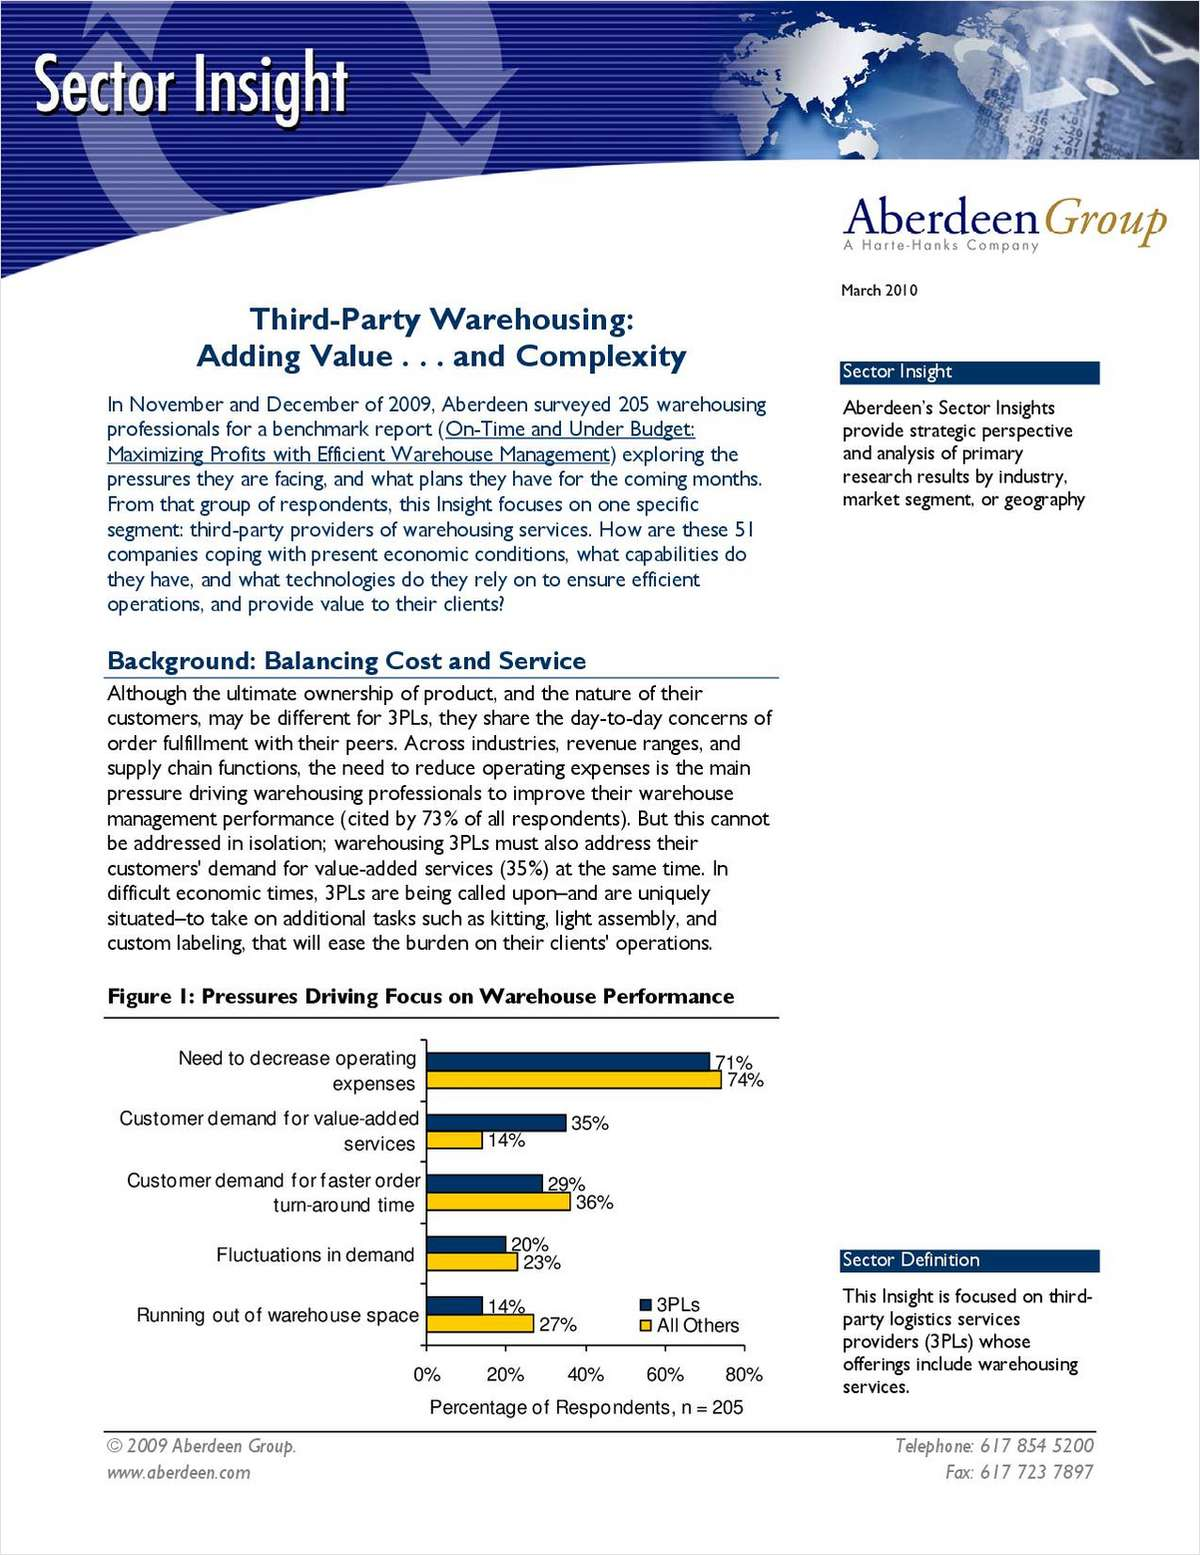 Third-Party Warehousing: Adding Value and Complexity